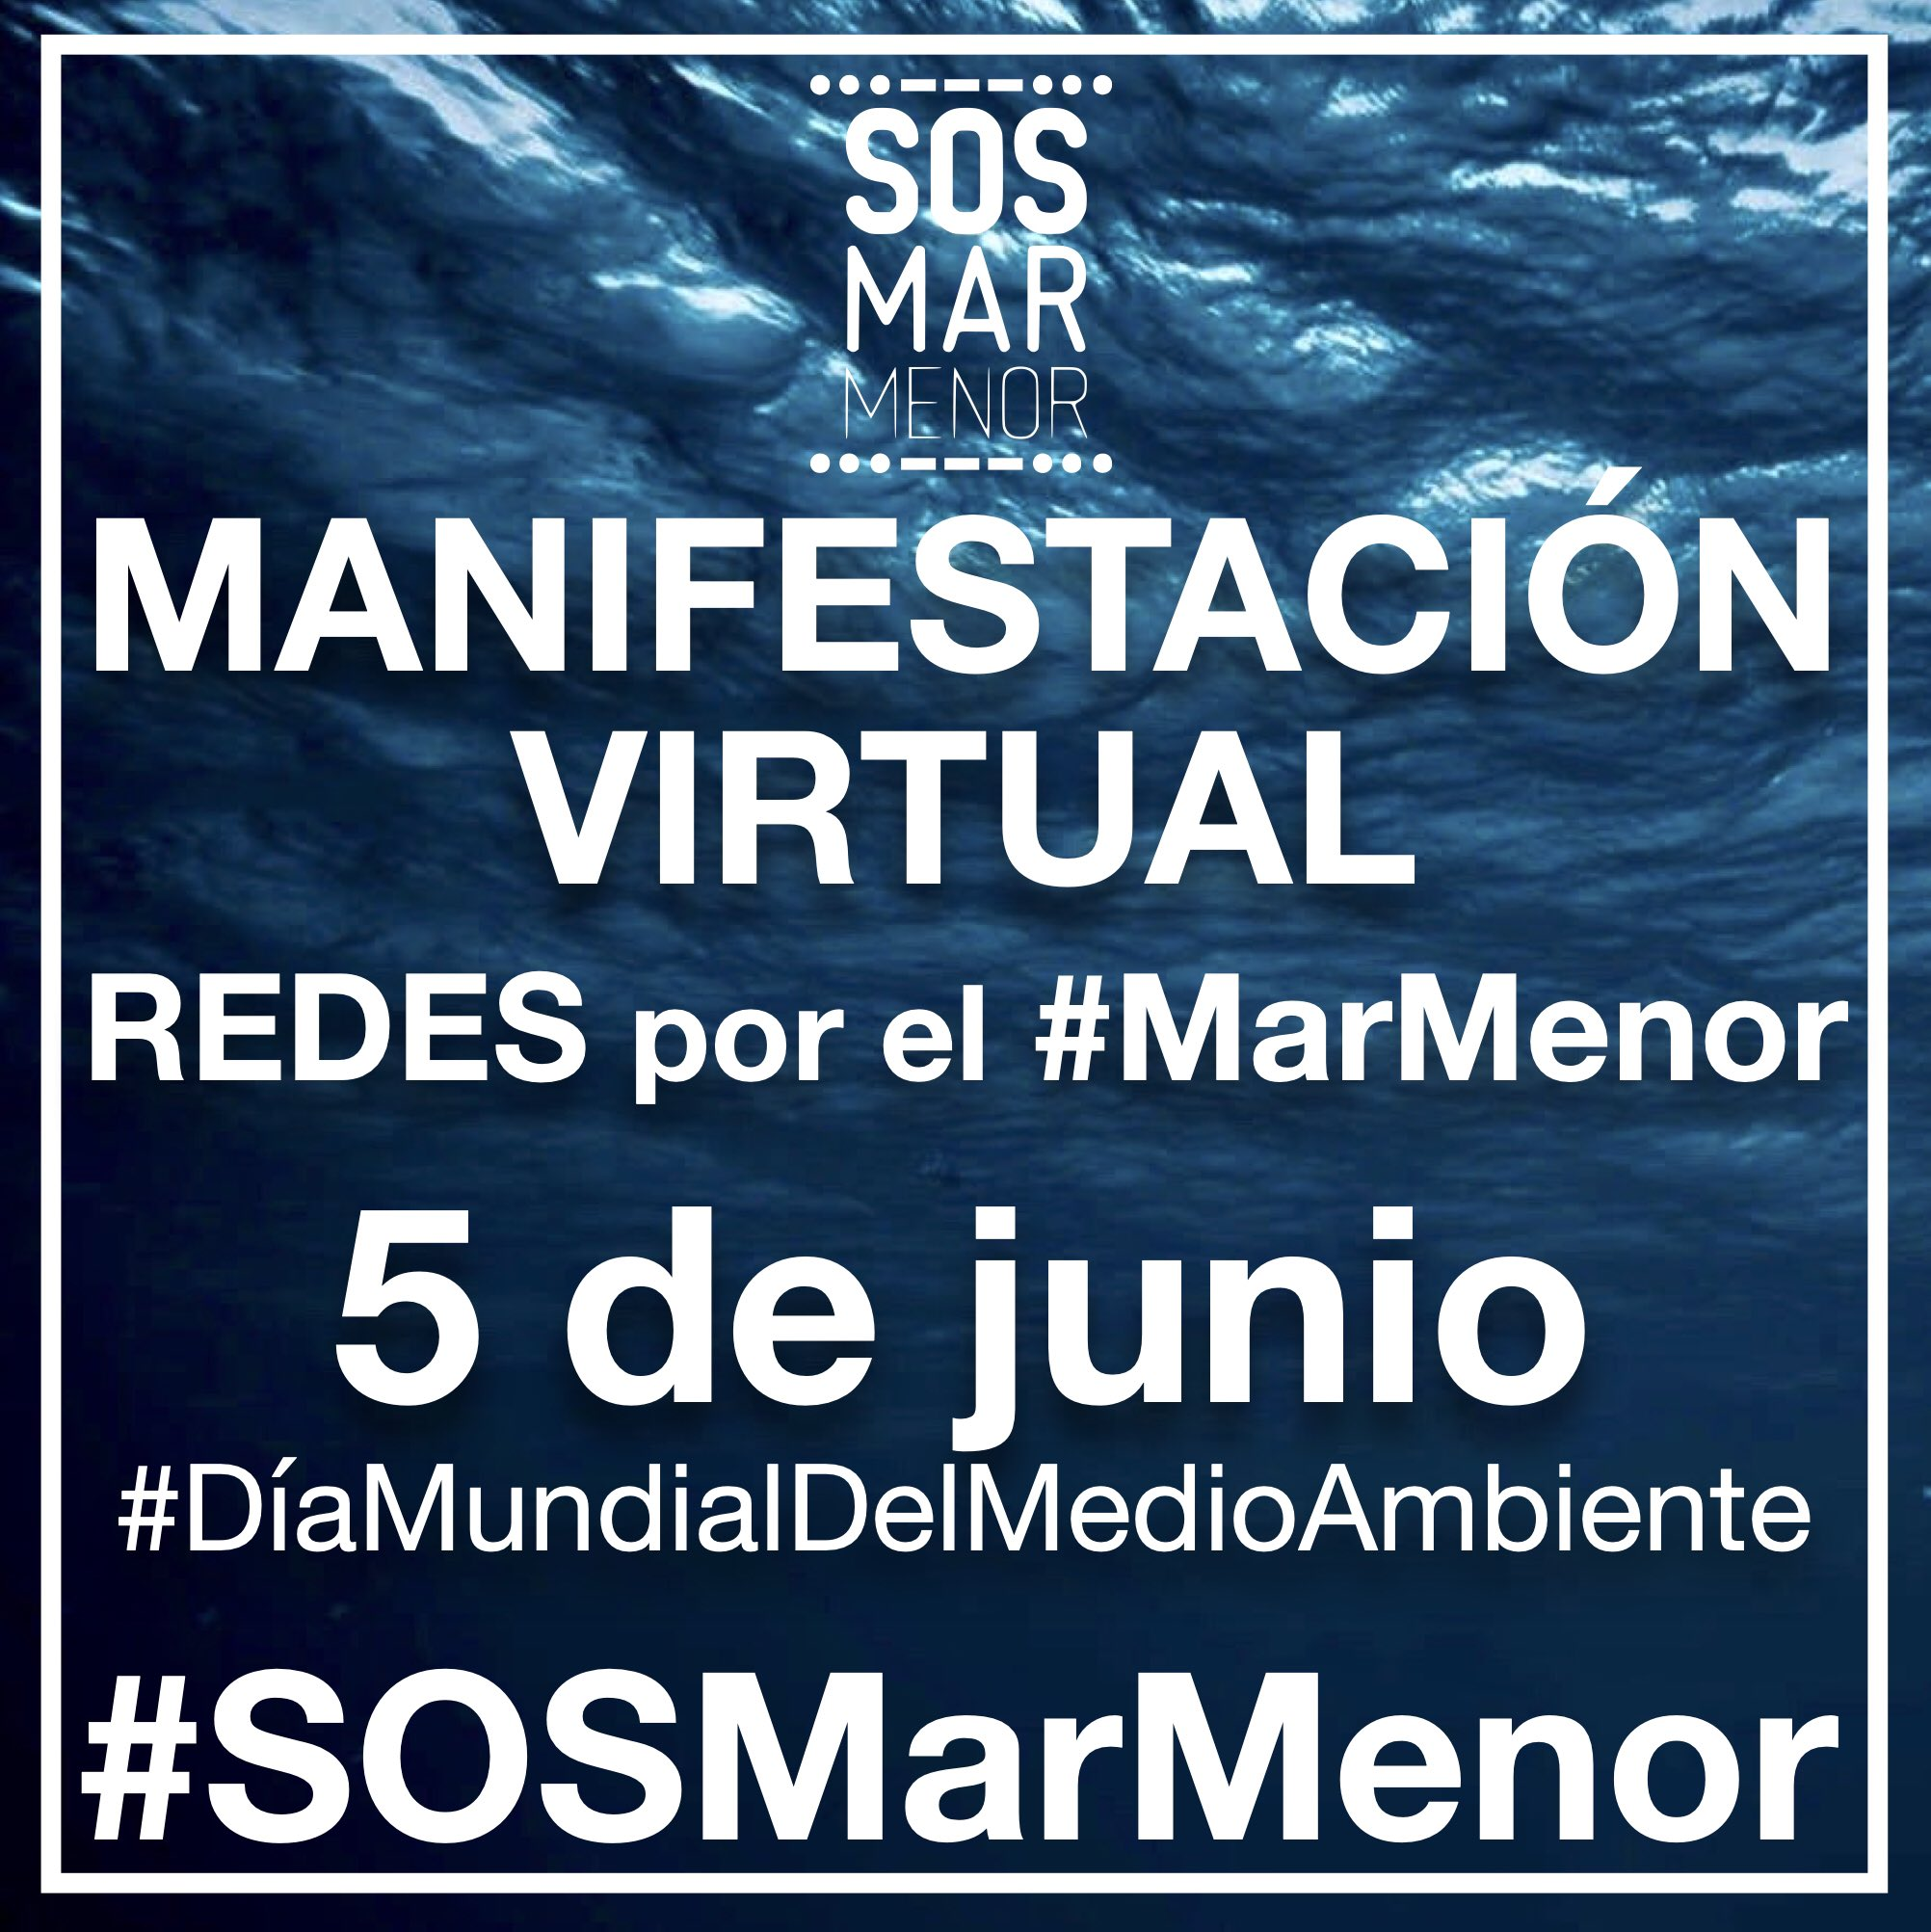 Cartel redes Manifestación Virtual 5junio2020 #SOSMarMenor